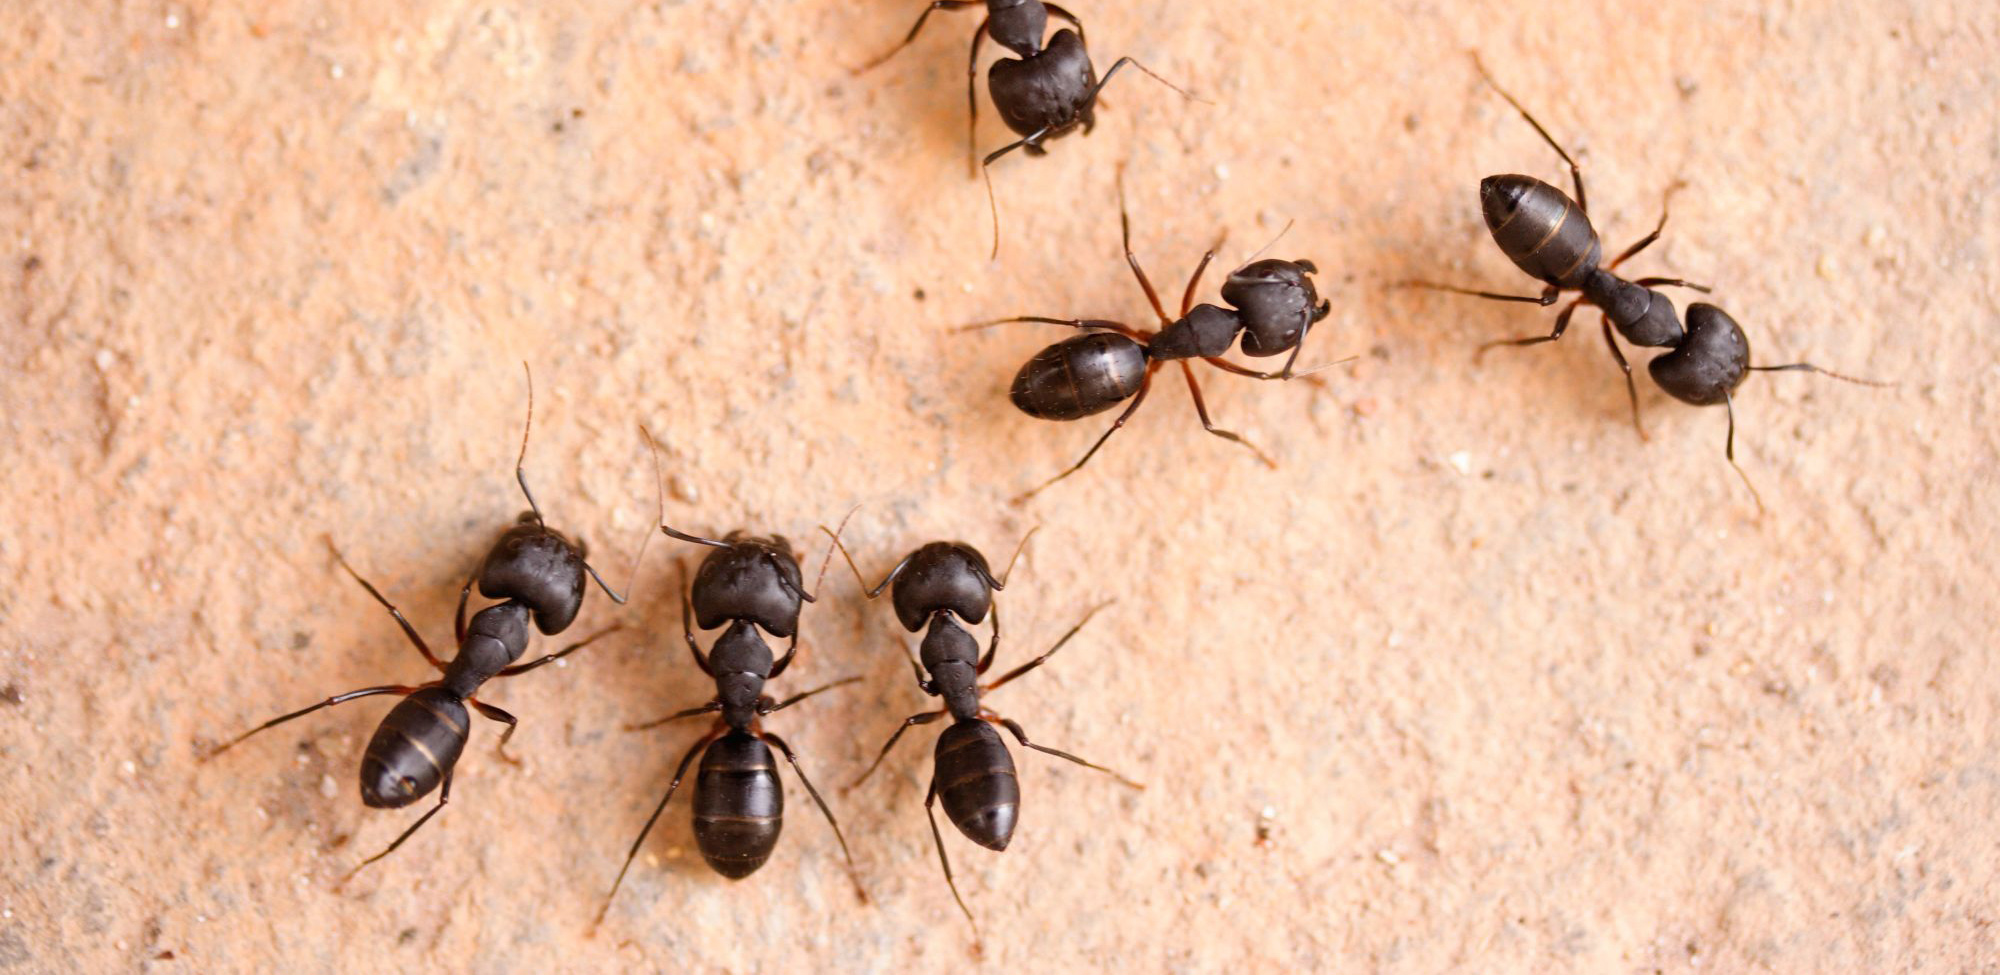 Aacute Pest Control - Carpenter Ant Pictures